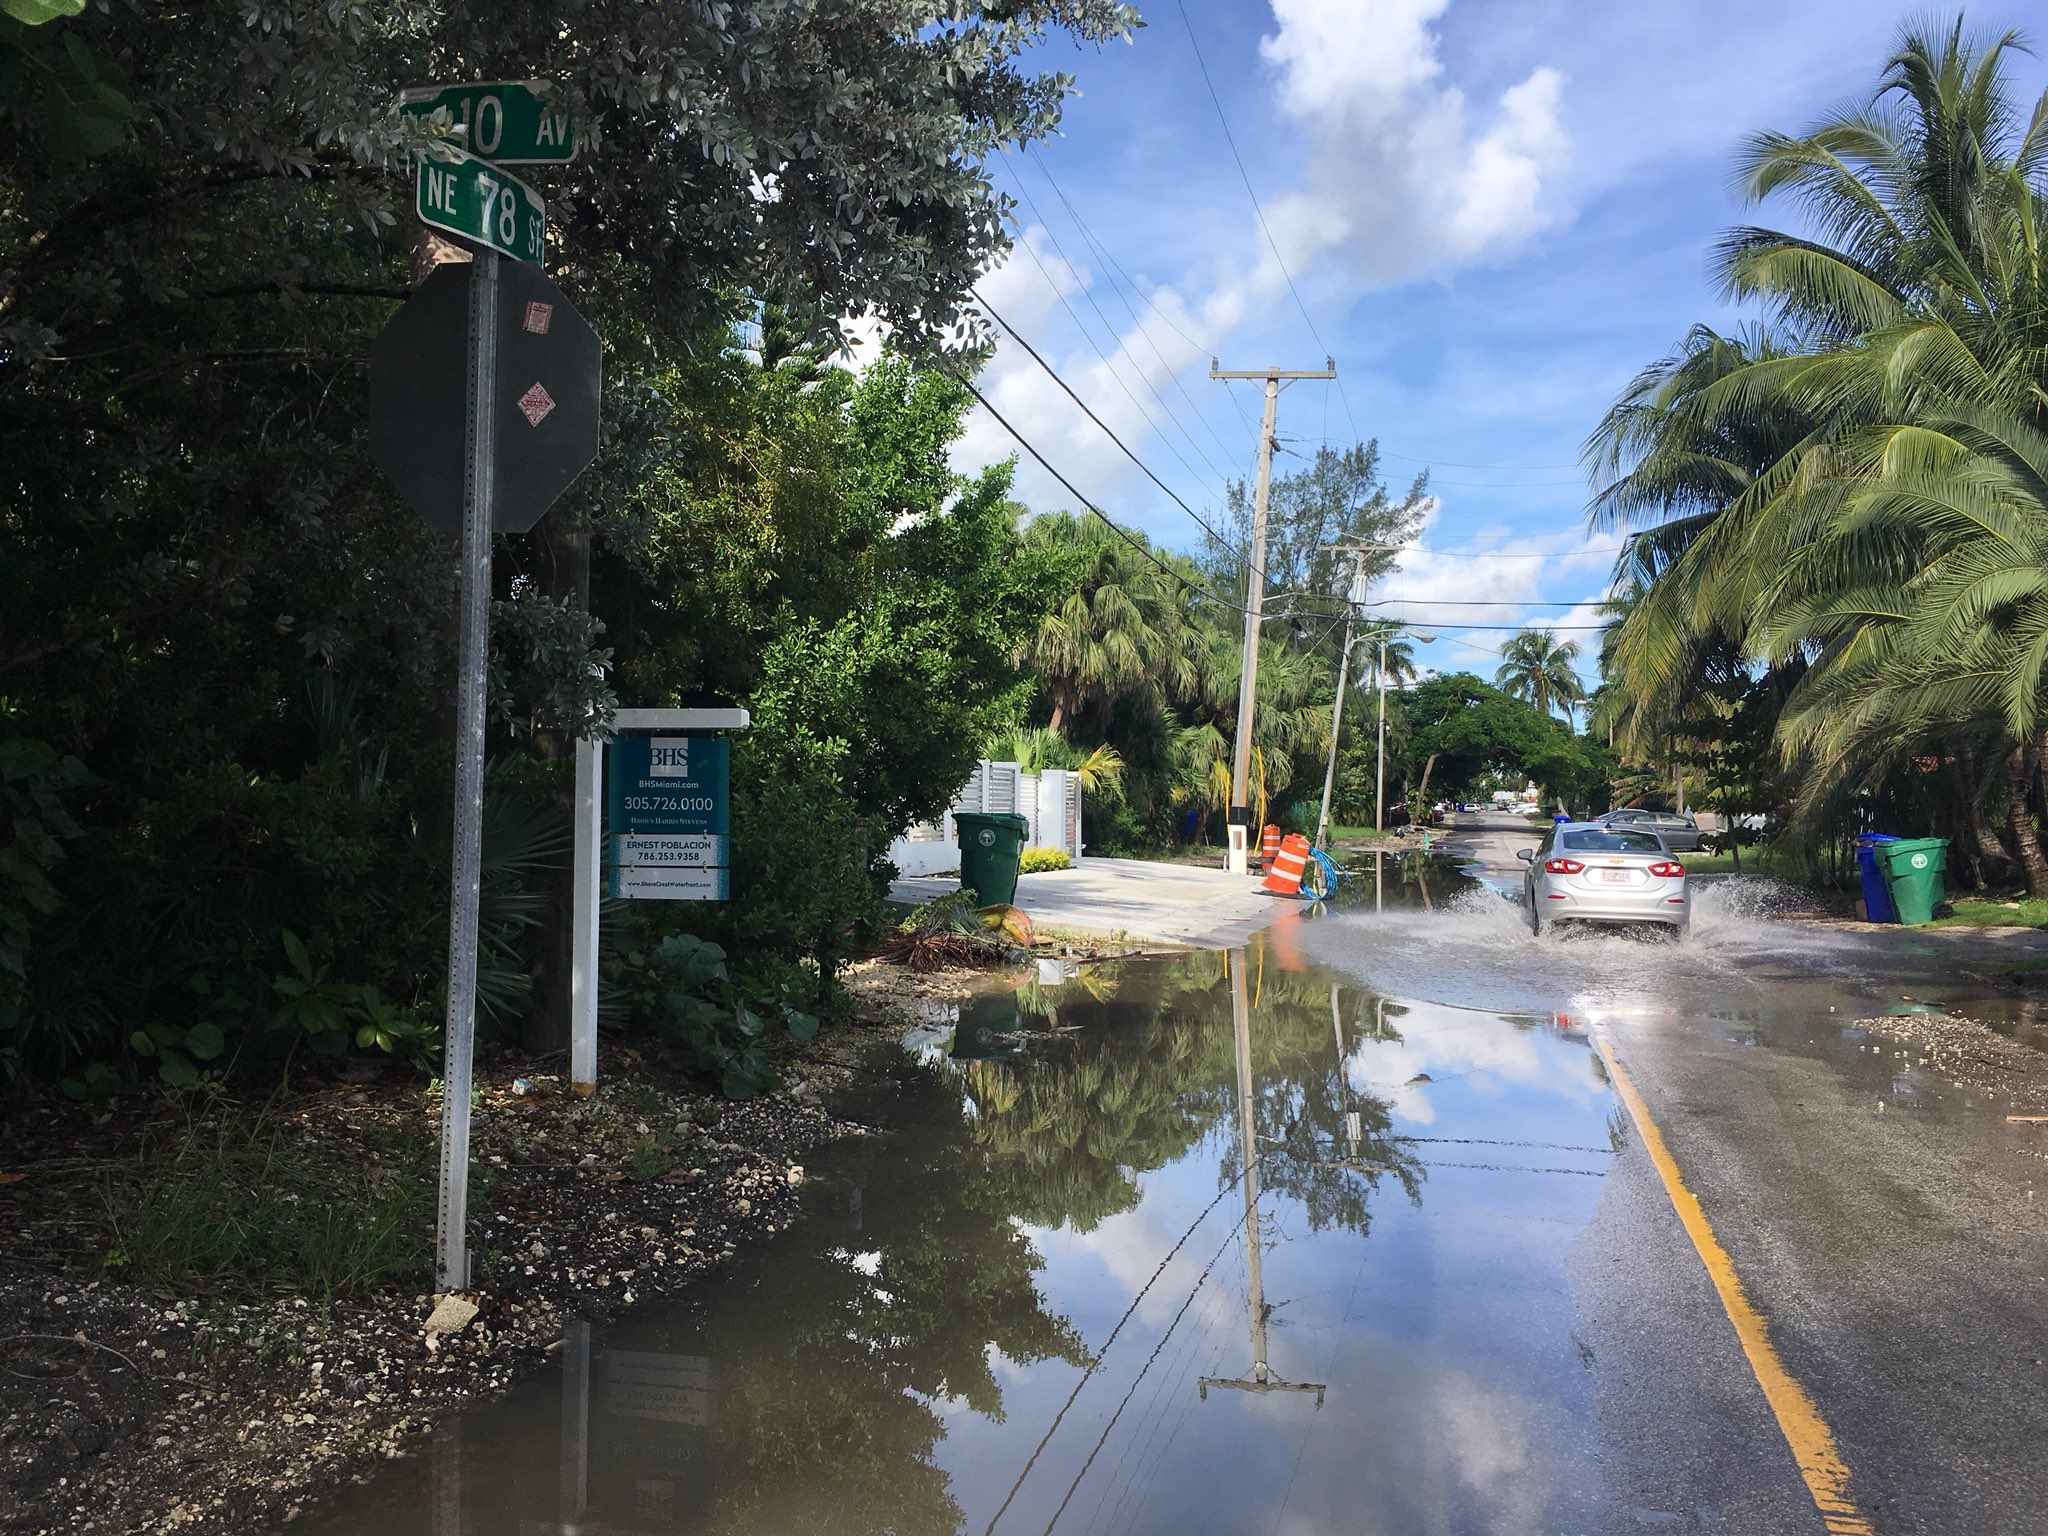 LIVE: #kingtide flooding this morning in Shorecrest, Miami #sealevelrise